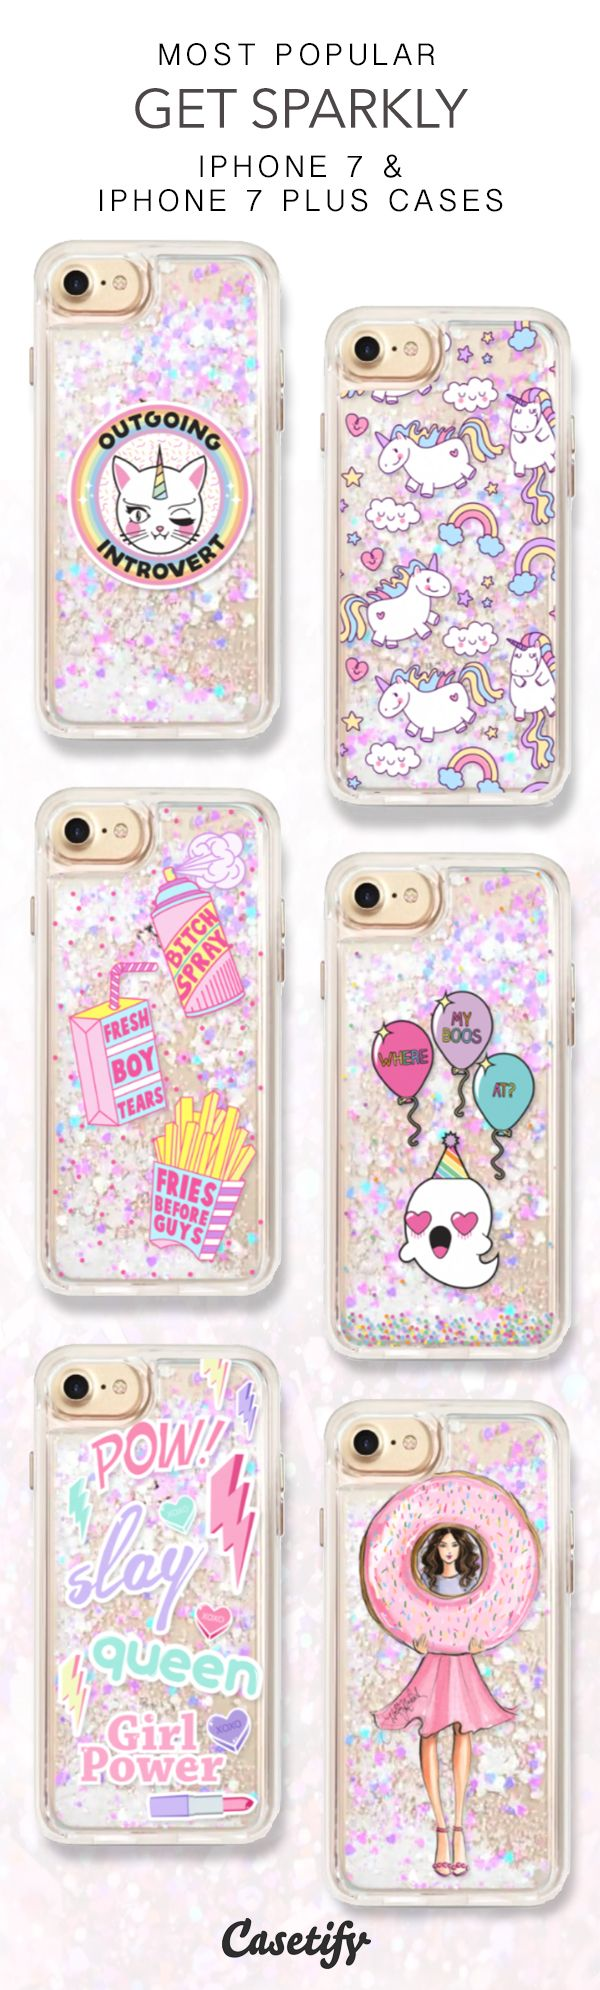 Most Popular Get Sparkly iPhone 7 Cases here > https://www.casetify.com/collections/iphone-7-glitter-cases#/